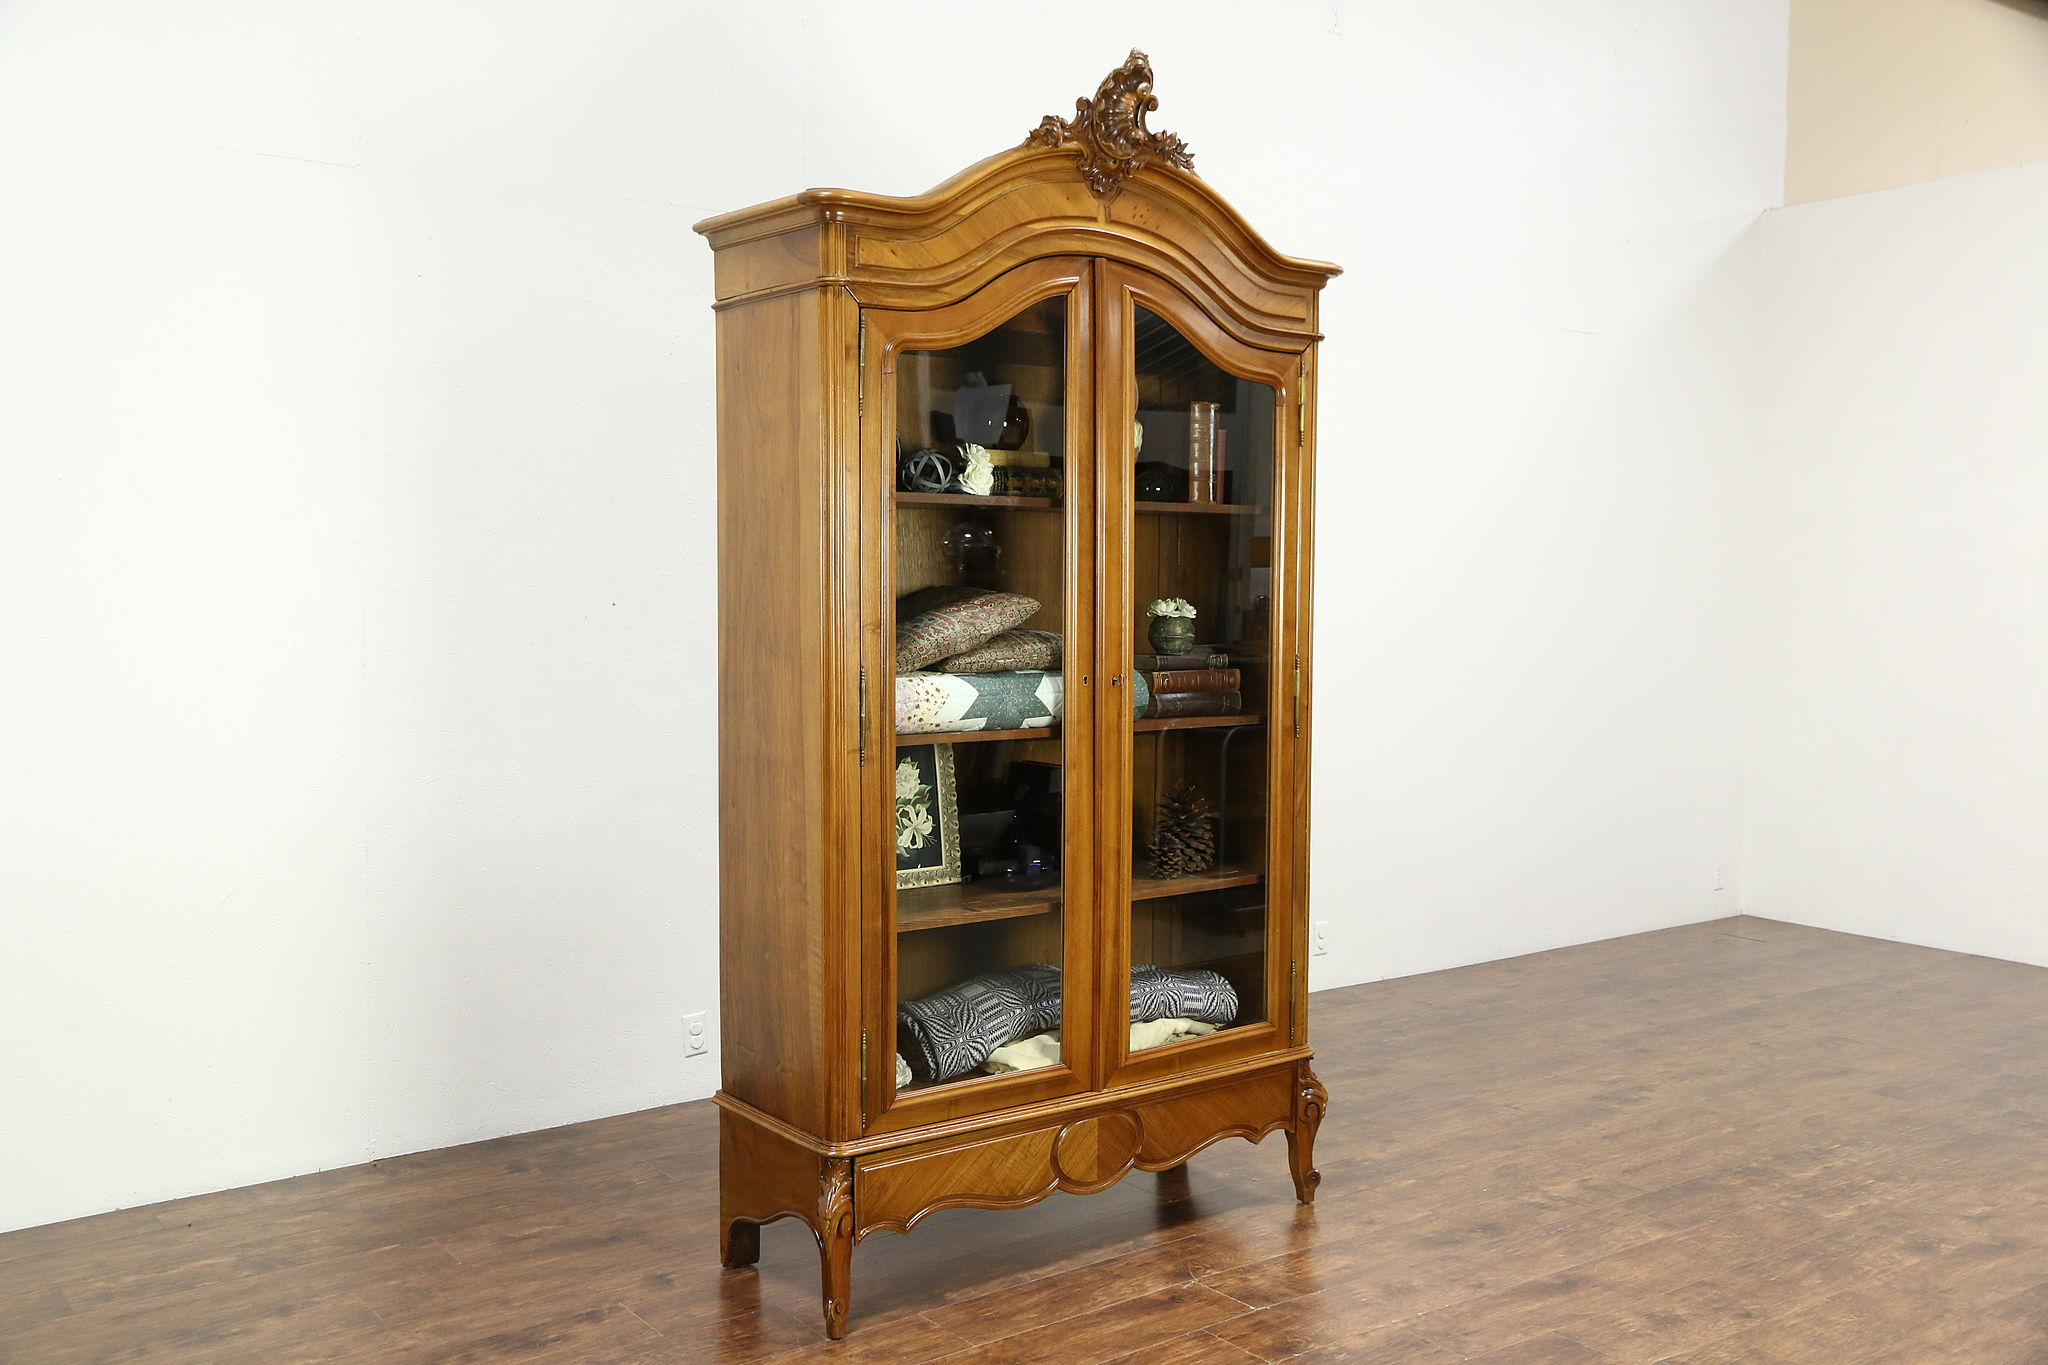 French Antique Carved Fruitwood Armoire, Bookcase Or China Cabinet, Glass  Doors ...